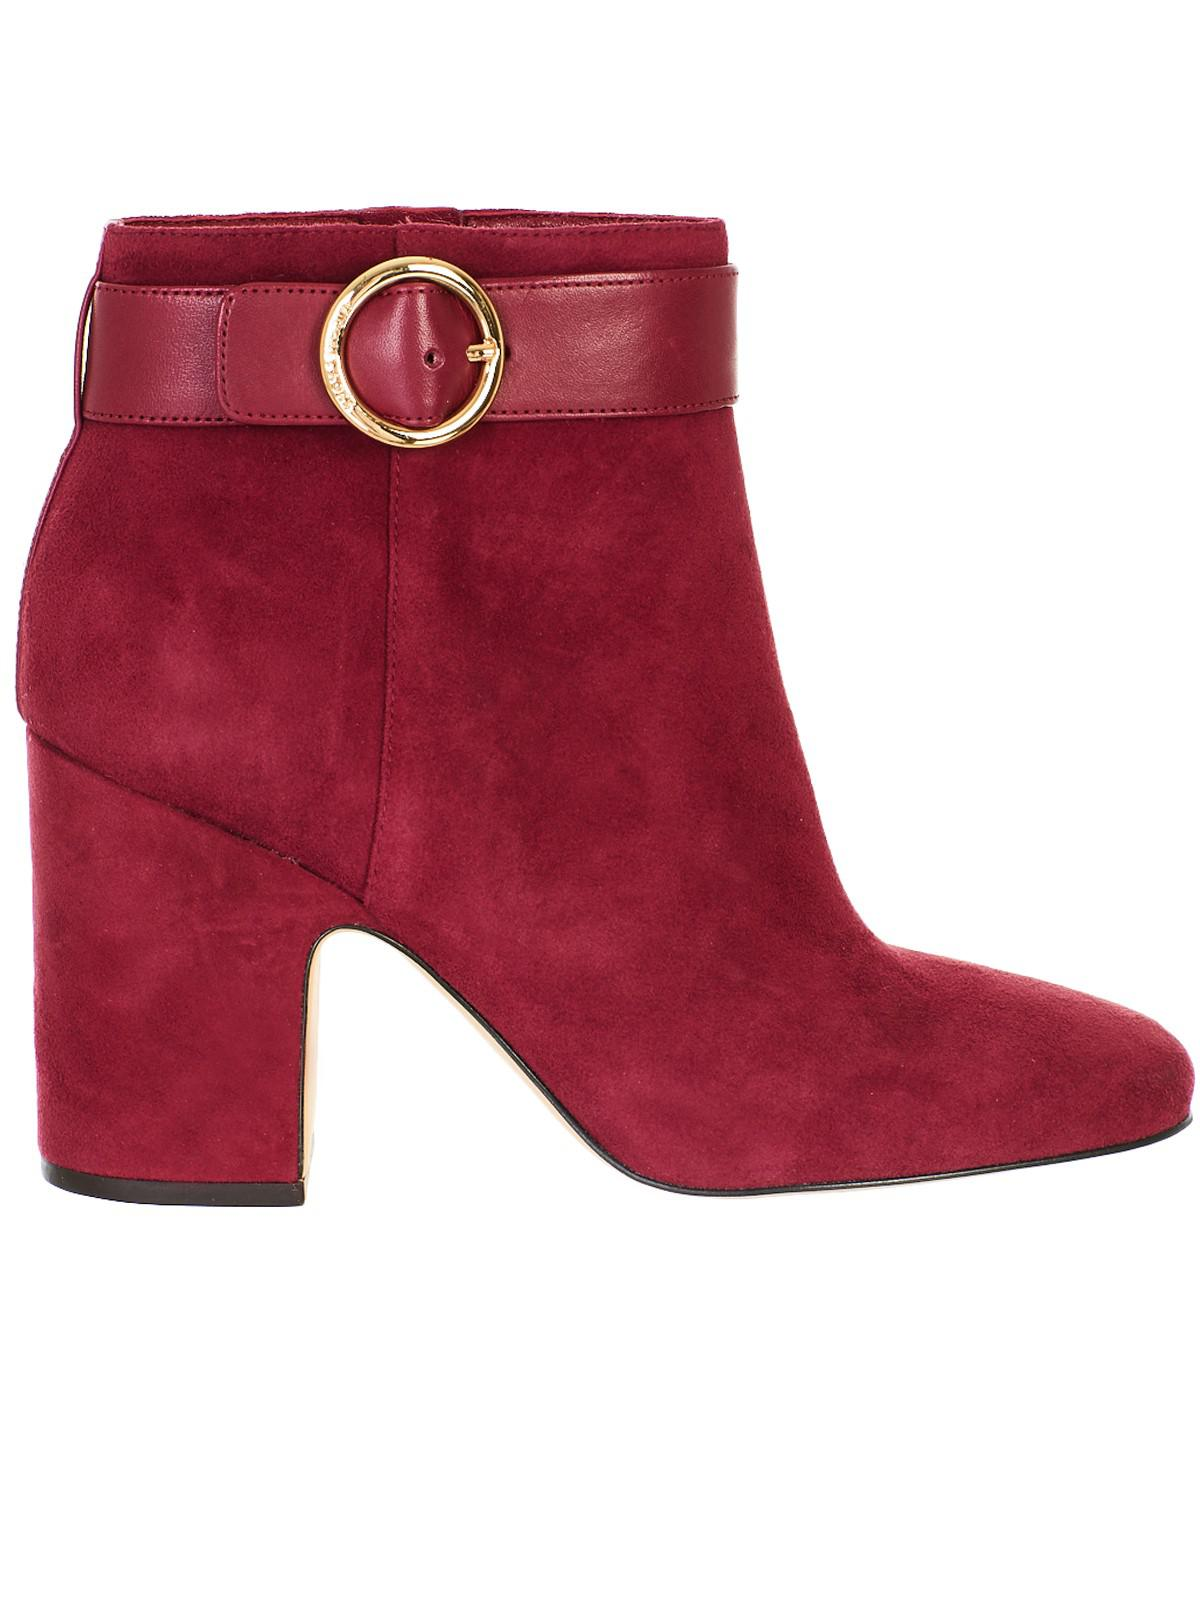 8047a7e3fc0dd Lyst - Michael Kors Wine Red Alana Ankle Boots in Red